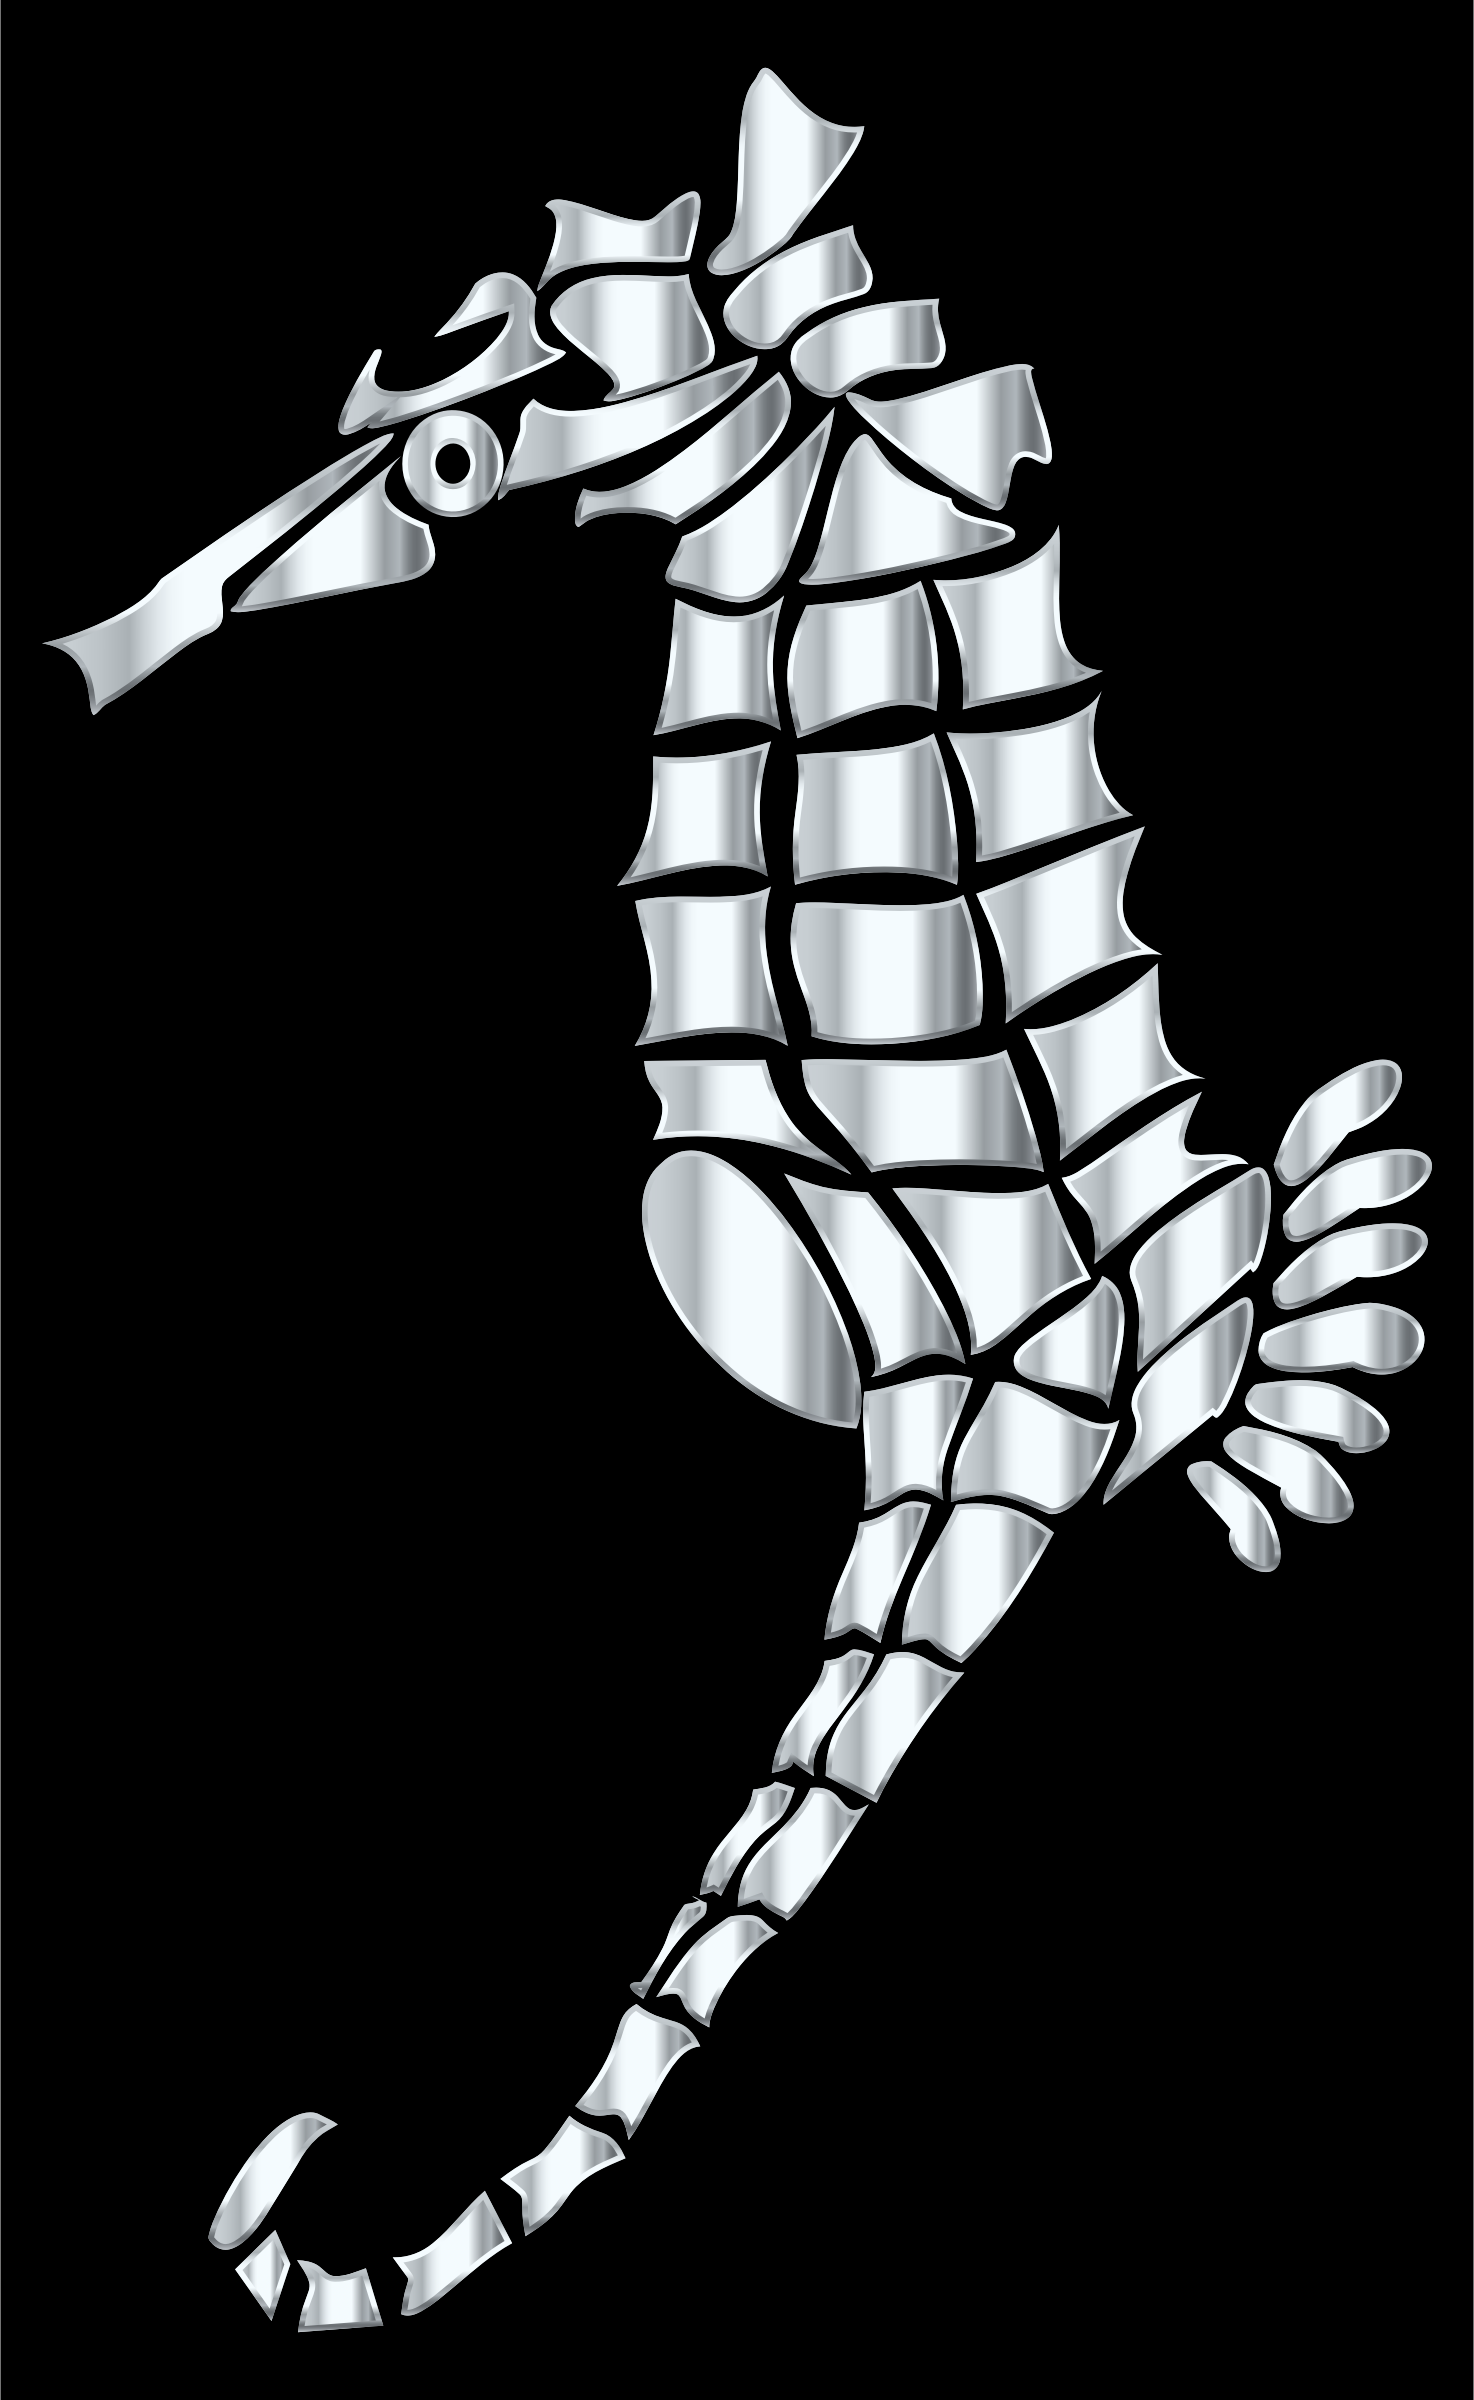 Silver Stylized Seahorse Silhouette by GDJ